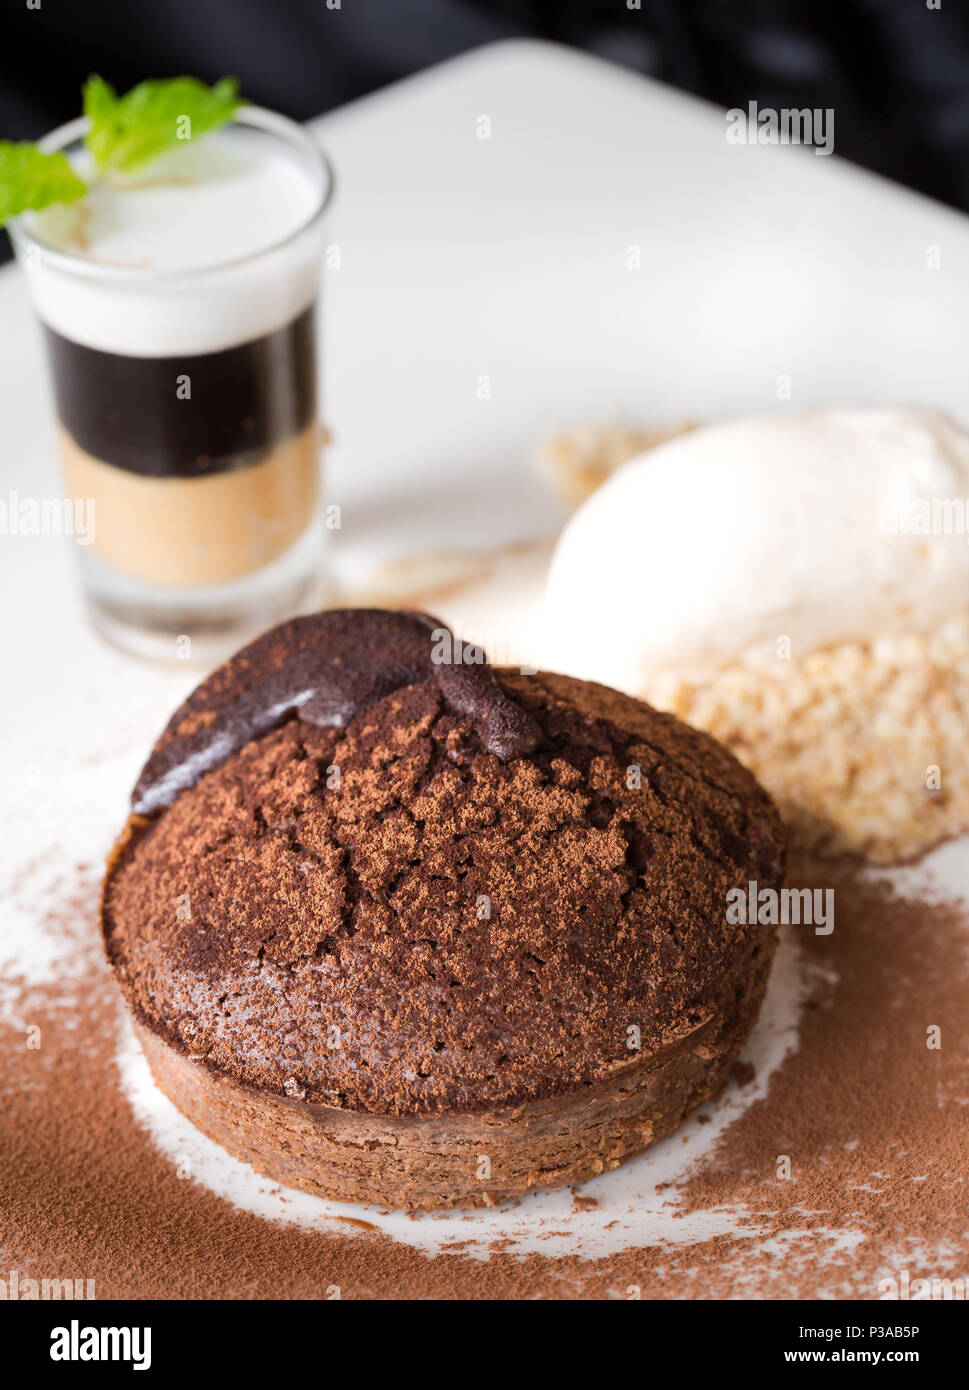 Chocolate lava cake or Molten Chocolate with fruit and vanilla ice cream Stock Photo